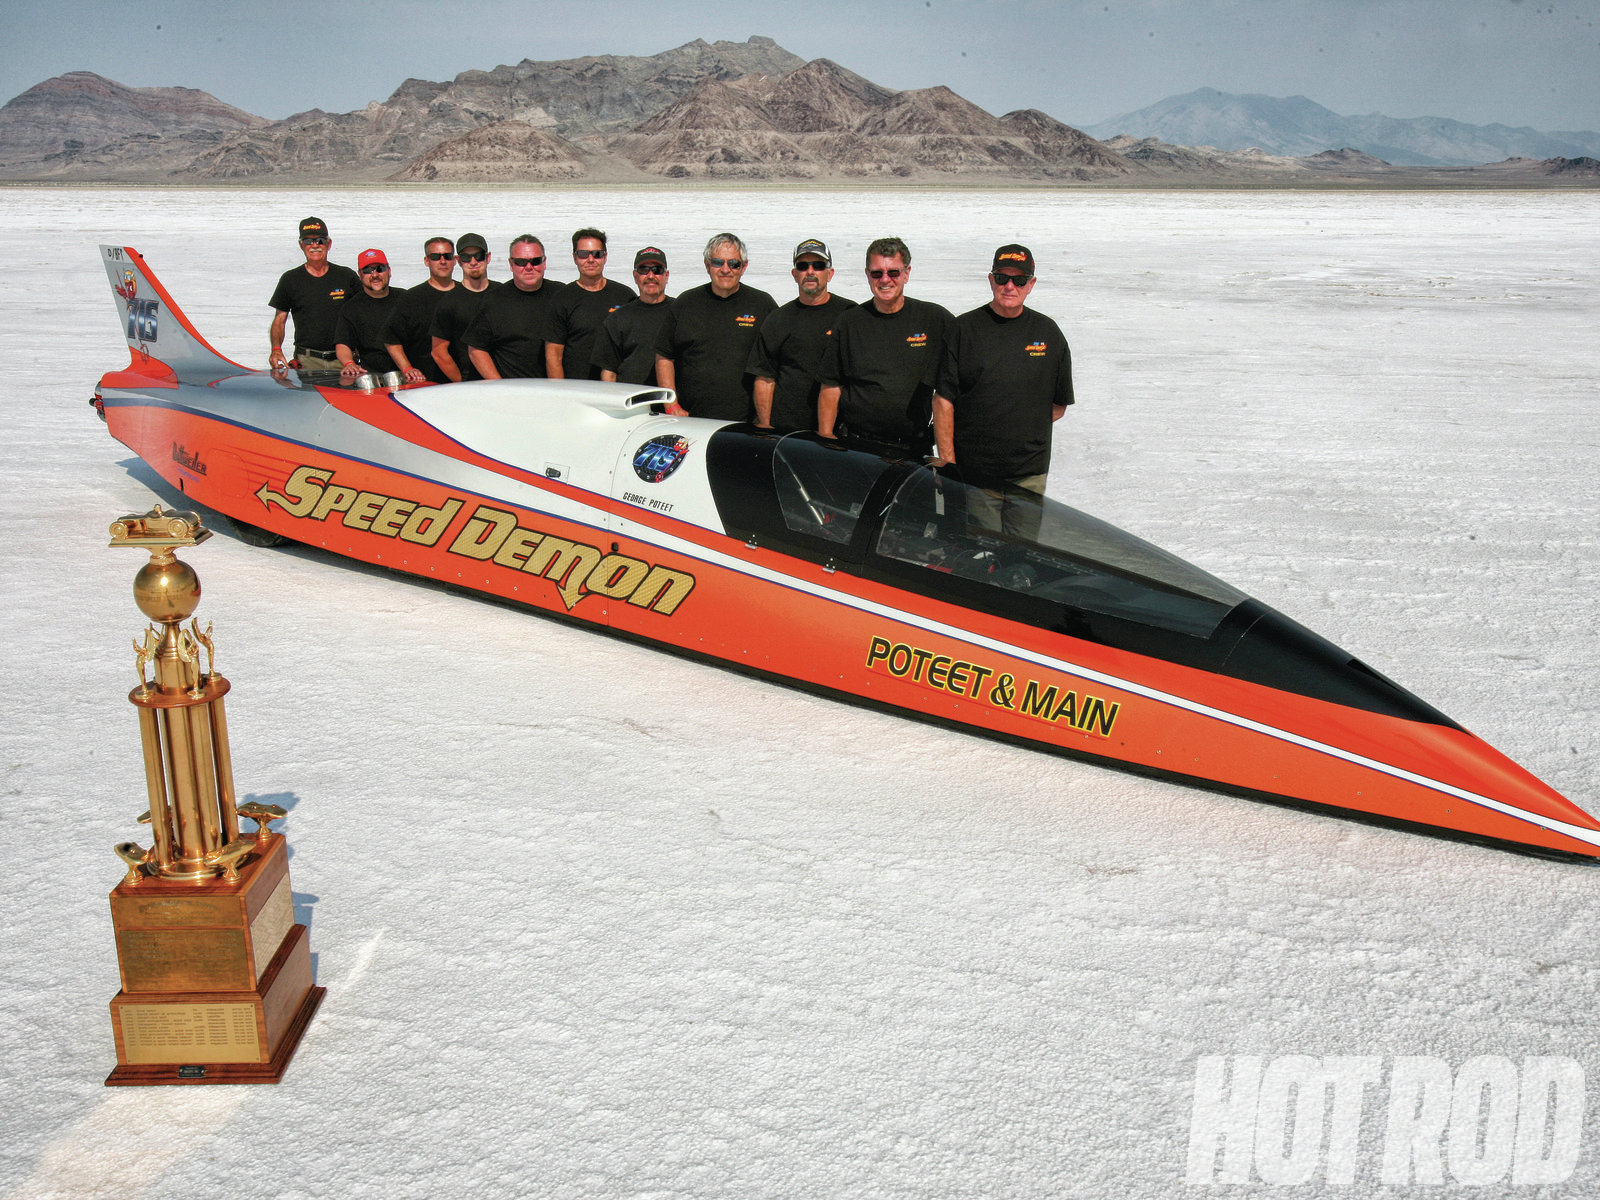 "The baddest Streamliner currently running is the Poteet & Main Speed Demon, which has taken the HOT ROD Top Time Trophy for fastest speed of the meet for four years in a row. This year's incredible flying mile speed, with George Poteet driving, was 423.325 mph, the biggest number seen on the trophy in 11 years (though the car has done 462 at the '11 FIA meet). Only Streamliner and Unlimited Diesel Truck are allowed to run multiple engines, but Speed Demon has been getting it done with single small-block V8s turbocharged by Kenny Duttweiler. An overview of the car's 347ci, 2,000hp engine is in the story ""Demonic"" in the Apr. '12 HRM. This year, the D-class engine was just 300 ci. The crew, seen here from left to right, is Nate Jones, Ian Mann, Greg Pyles, Aron Cranford, Steve Watt, David Main, David Diviak, Kenny Duttweiler, Joe Galati, Ron Main, and George Poteet."